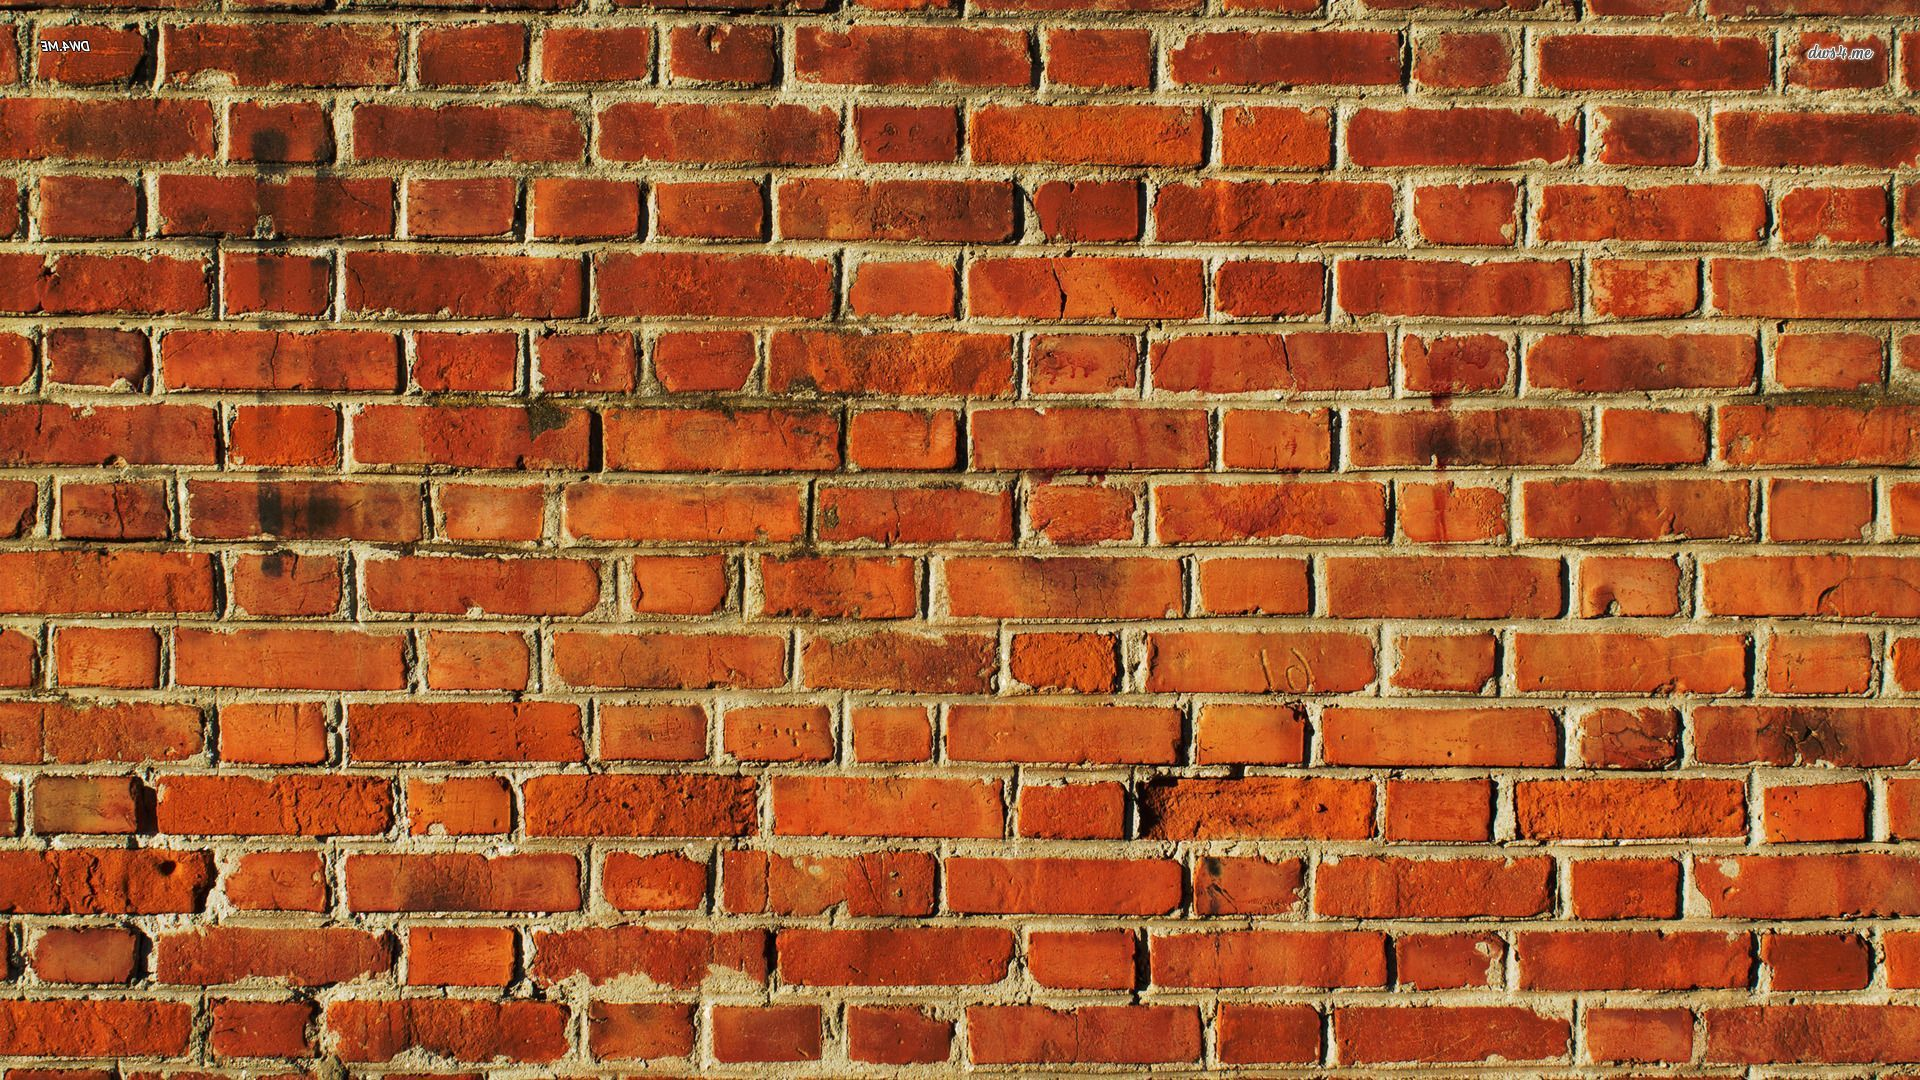 Red Brick Wallpaper Part - 20: Brick Wallpaper Red Awesome. ««